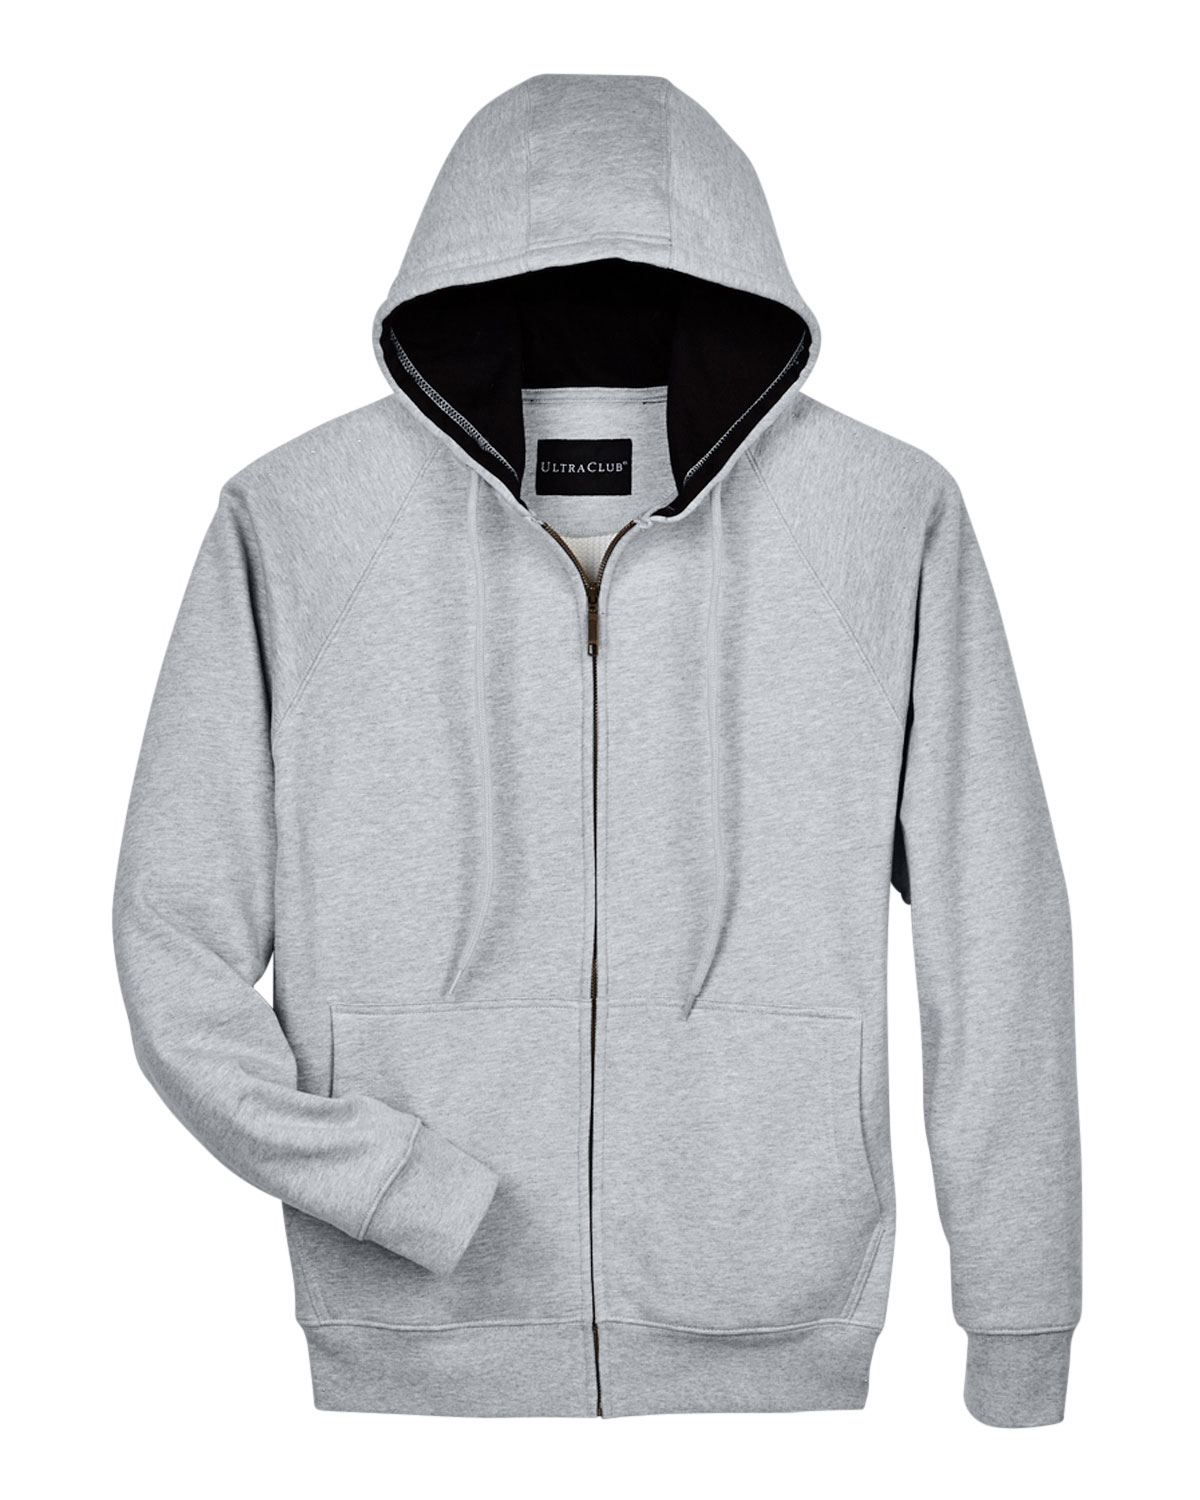 UltraClub Rugged Wear Thermal-Lined Full-Zip Jacket